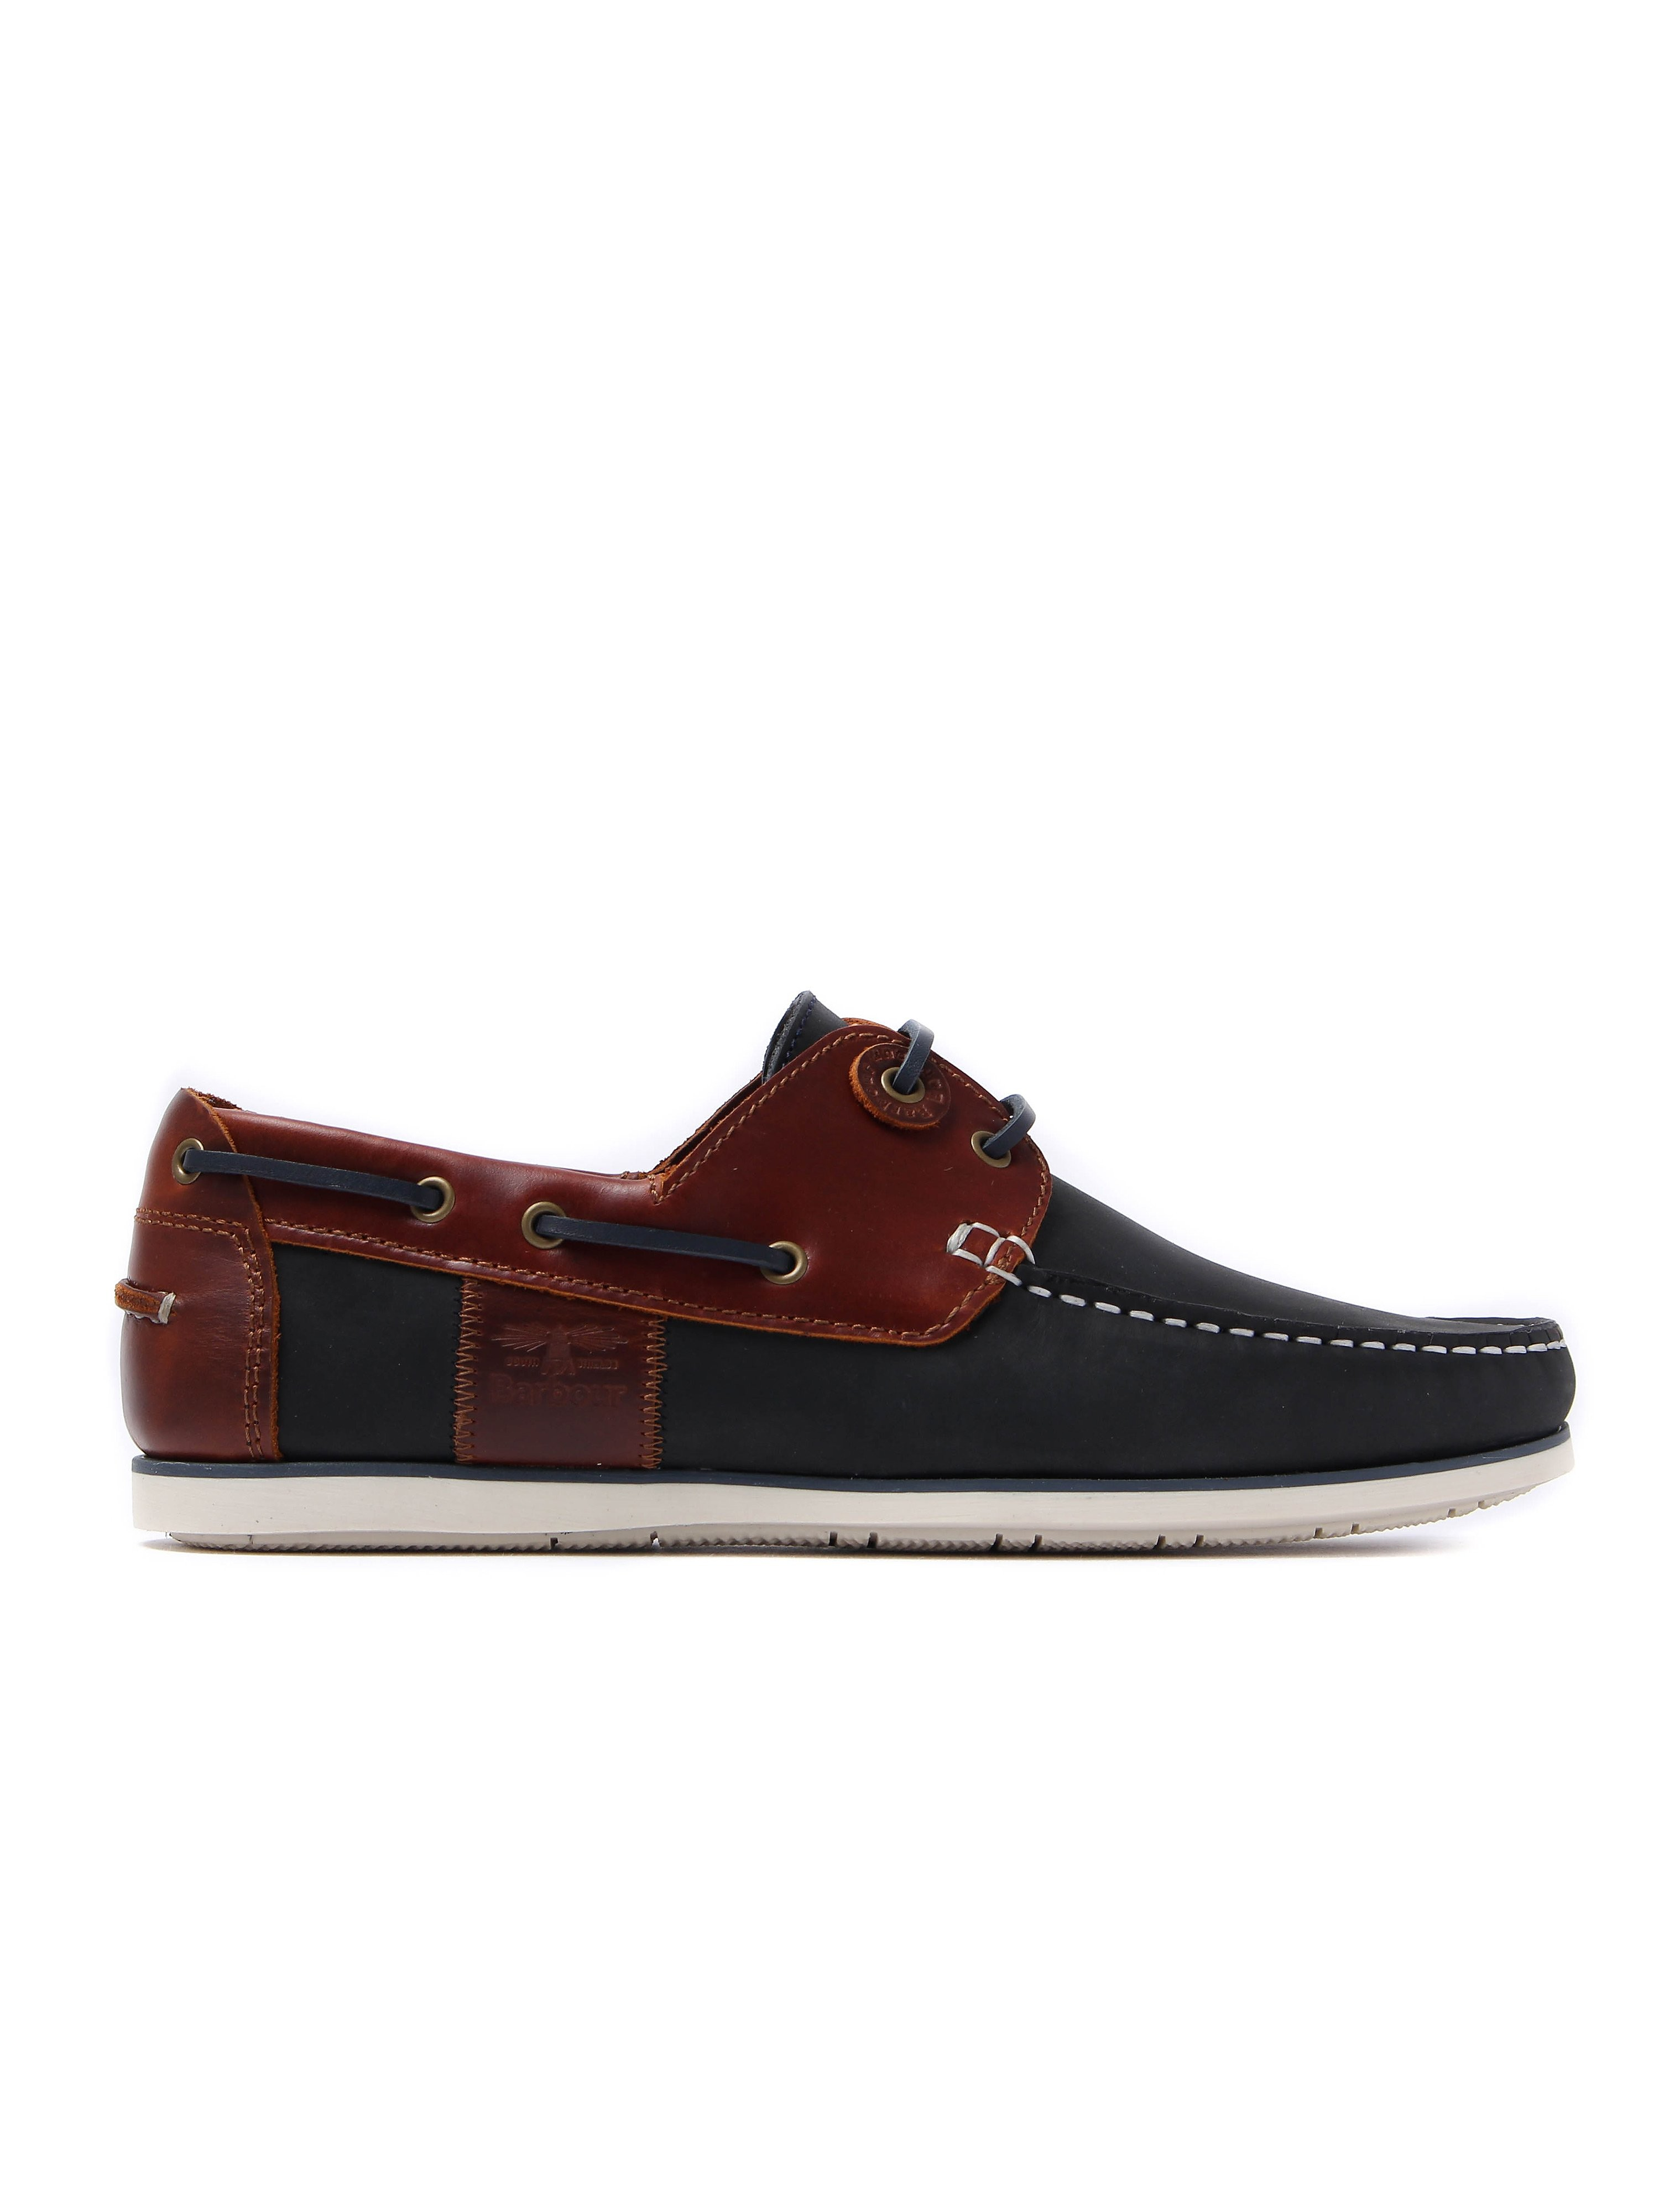 Barbour Men's Capstan Boat Shoes - Navy & Brown Leather